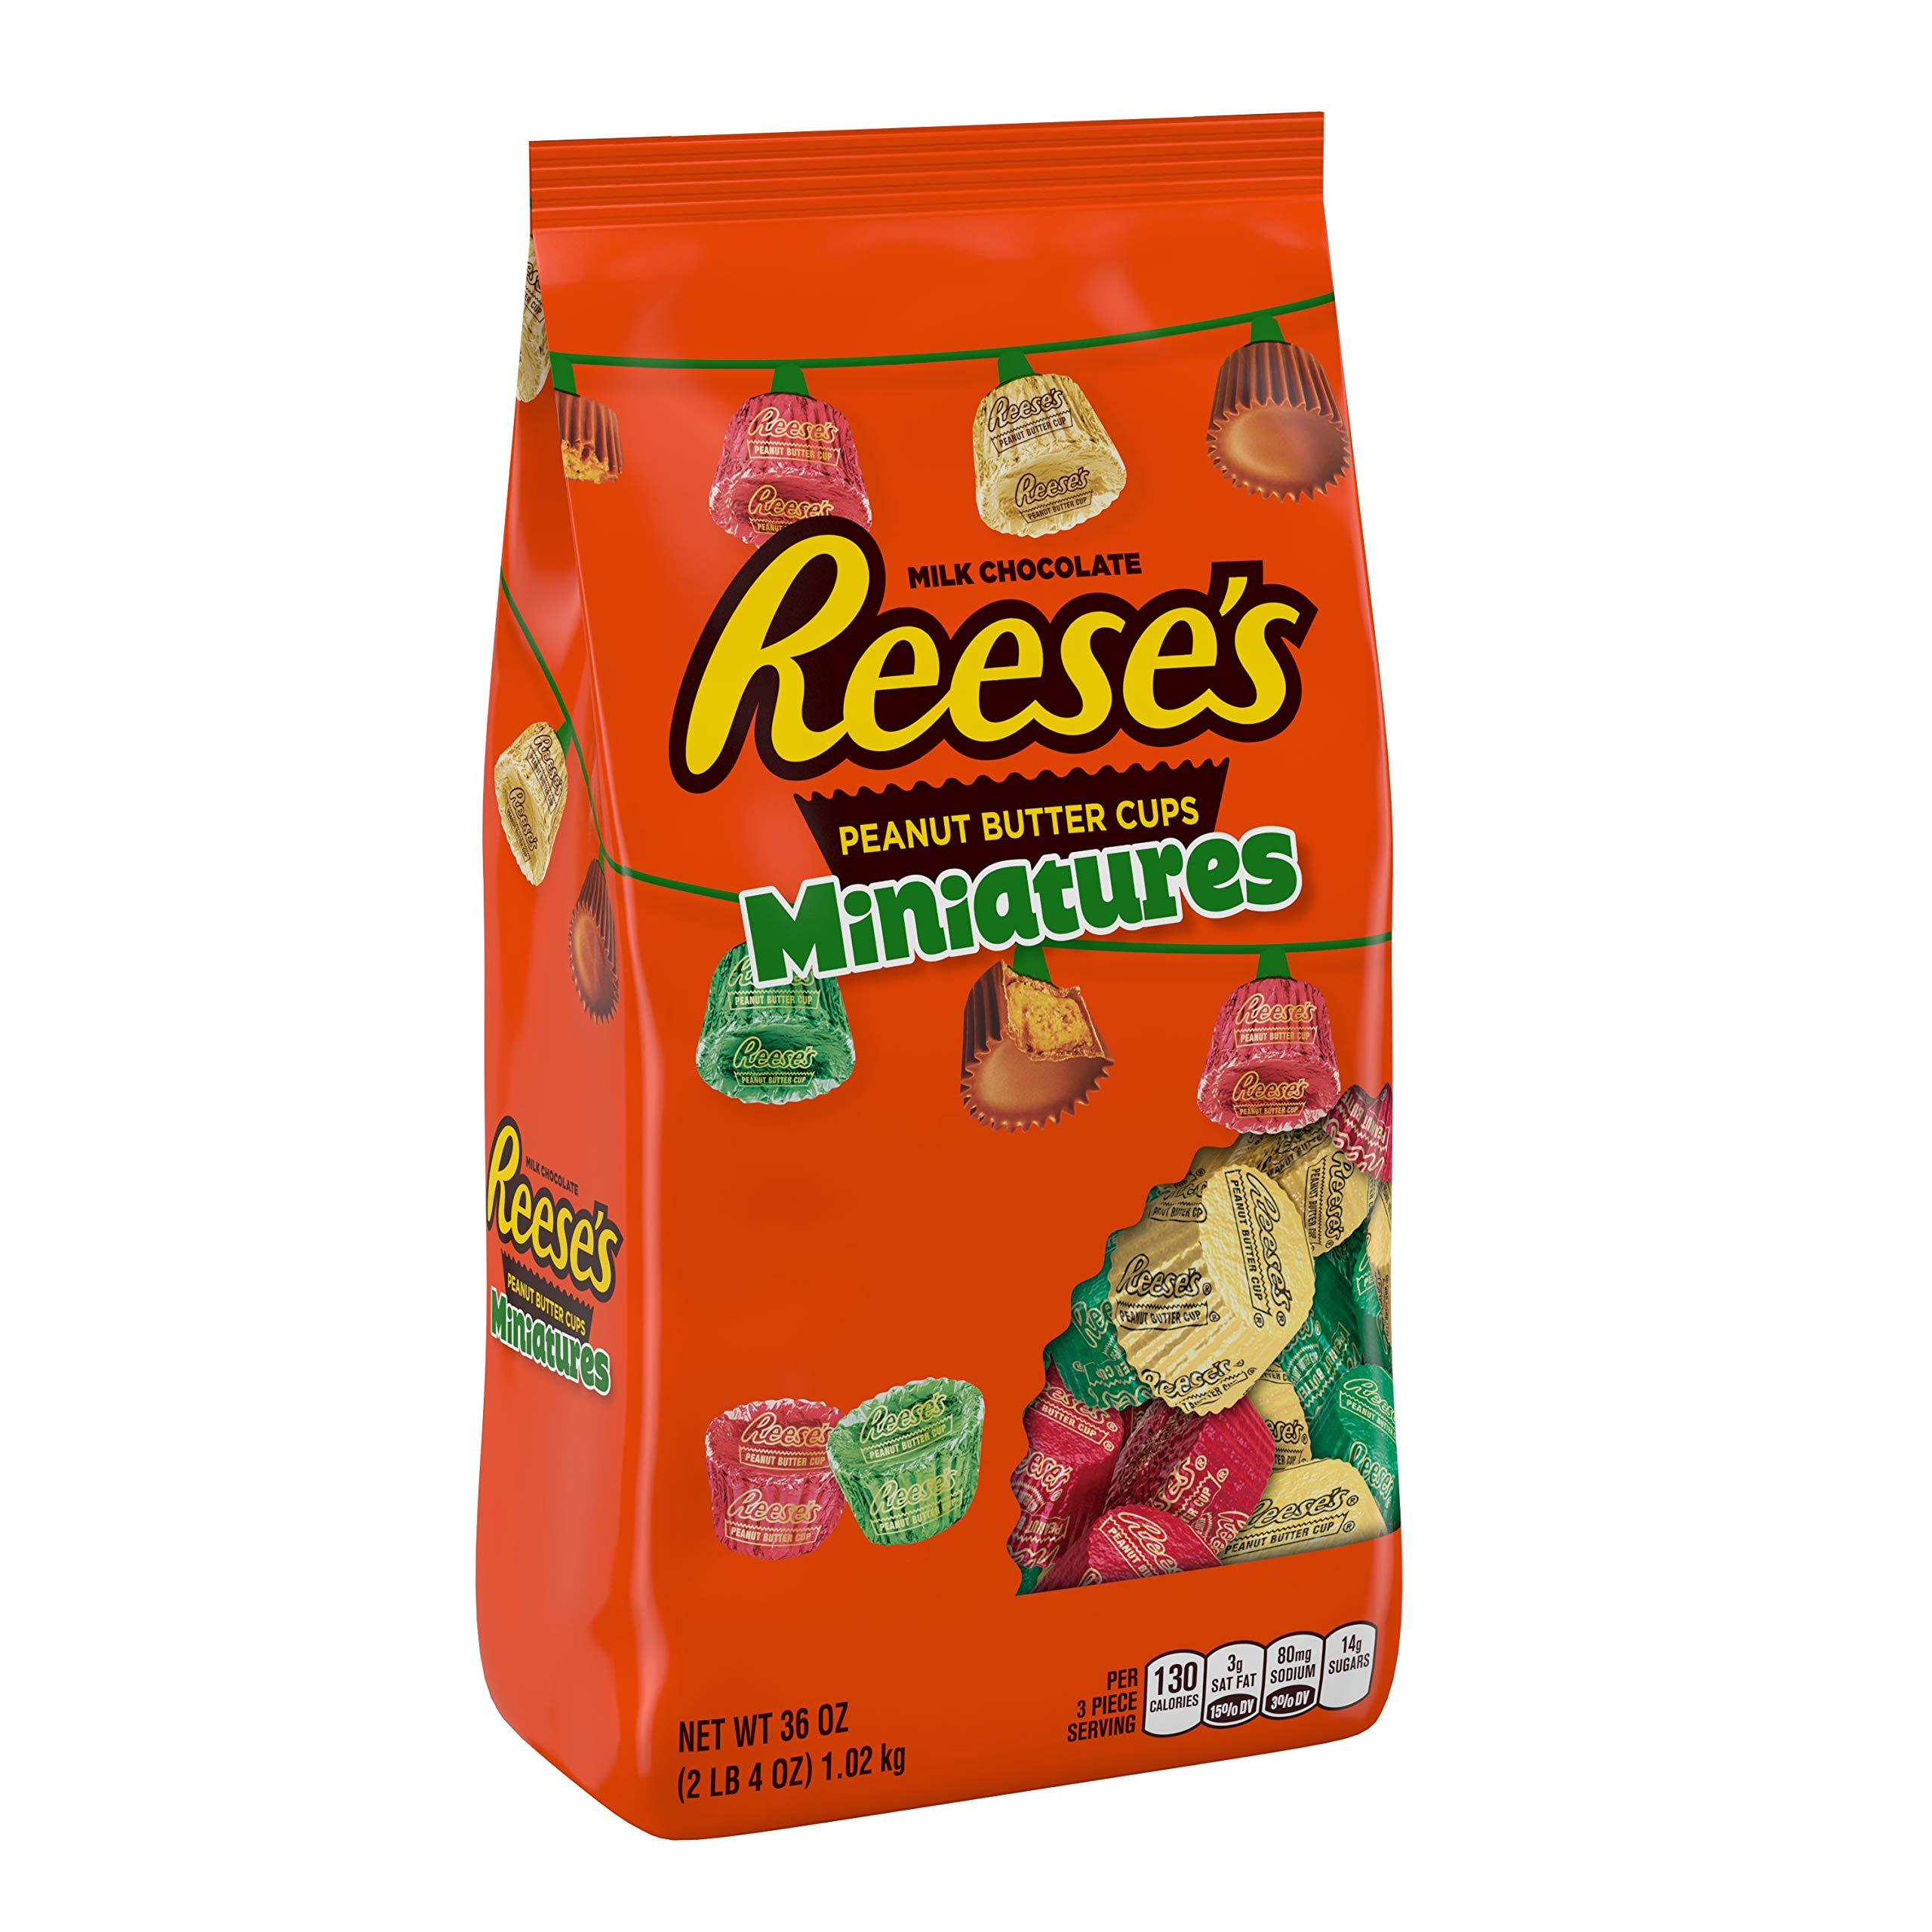 REESE'S Holiday Candy Peanut Butter Cup Miniatures 36 oz.